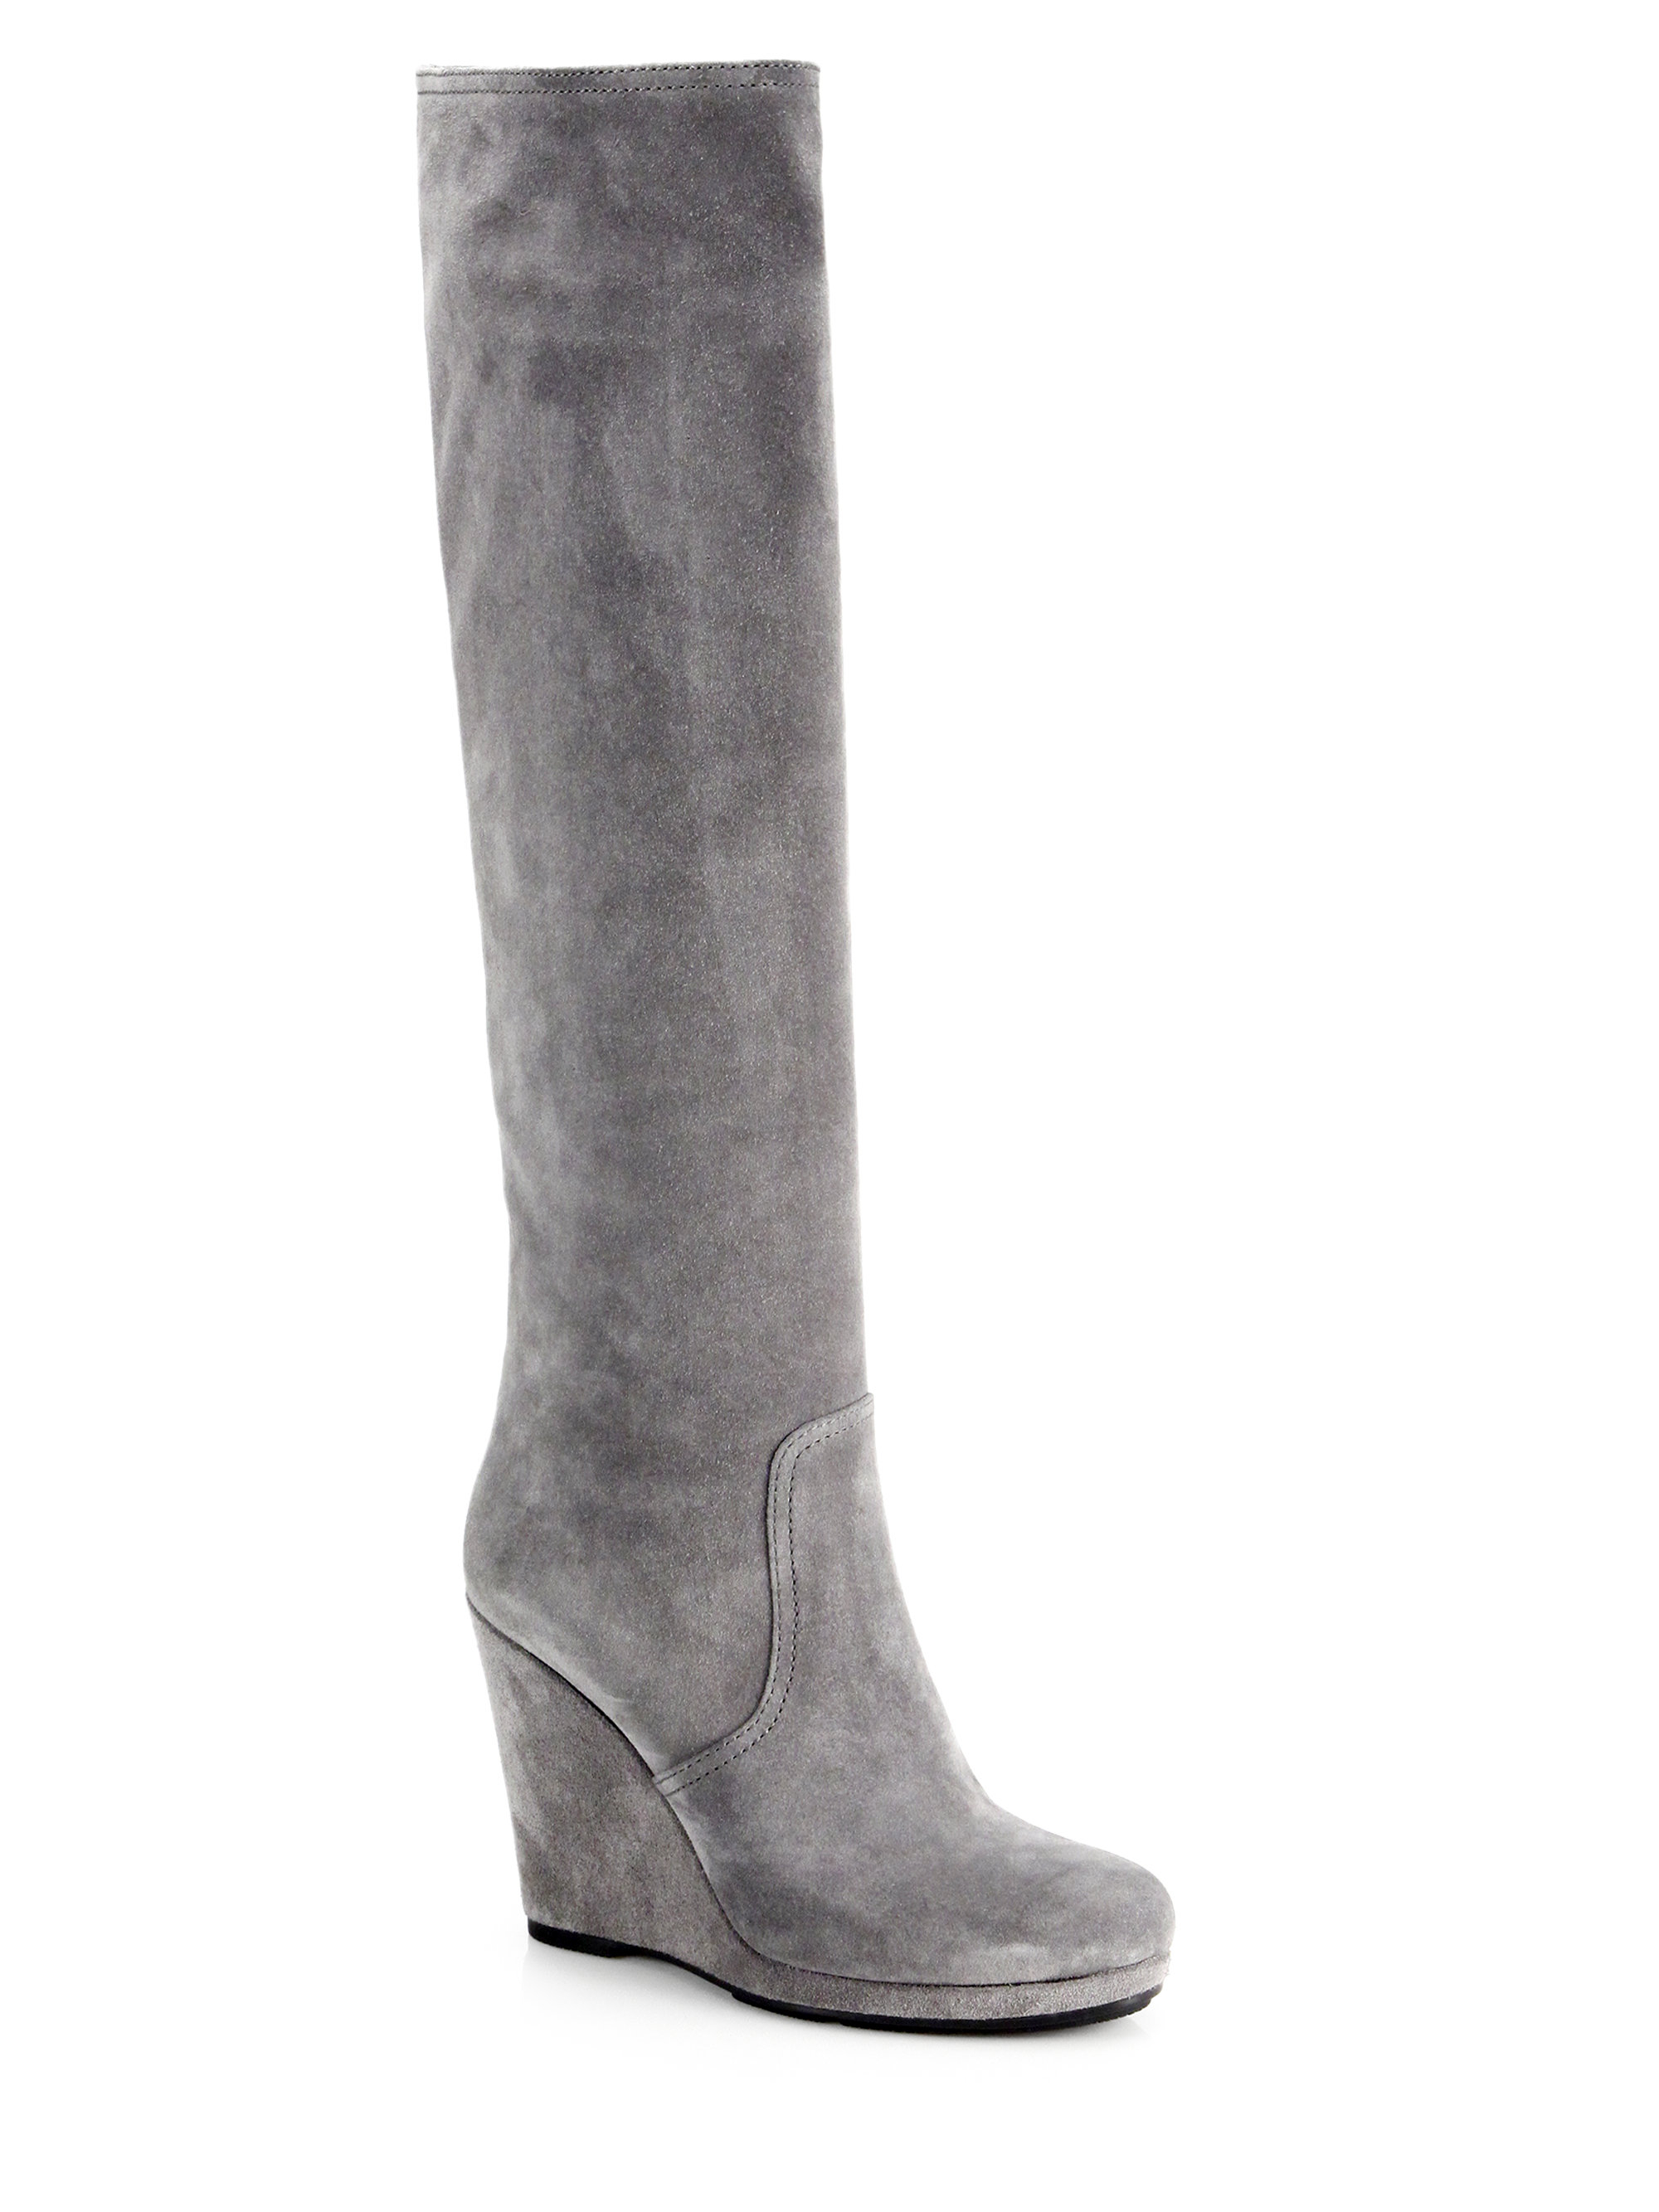 prada suede knee high wedge boots in gray grey lyst